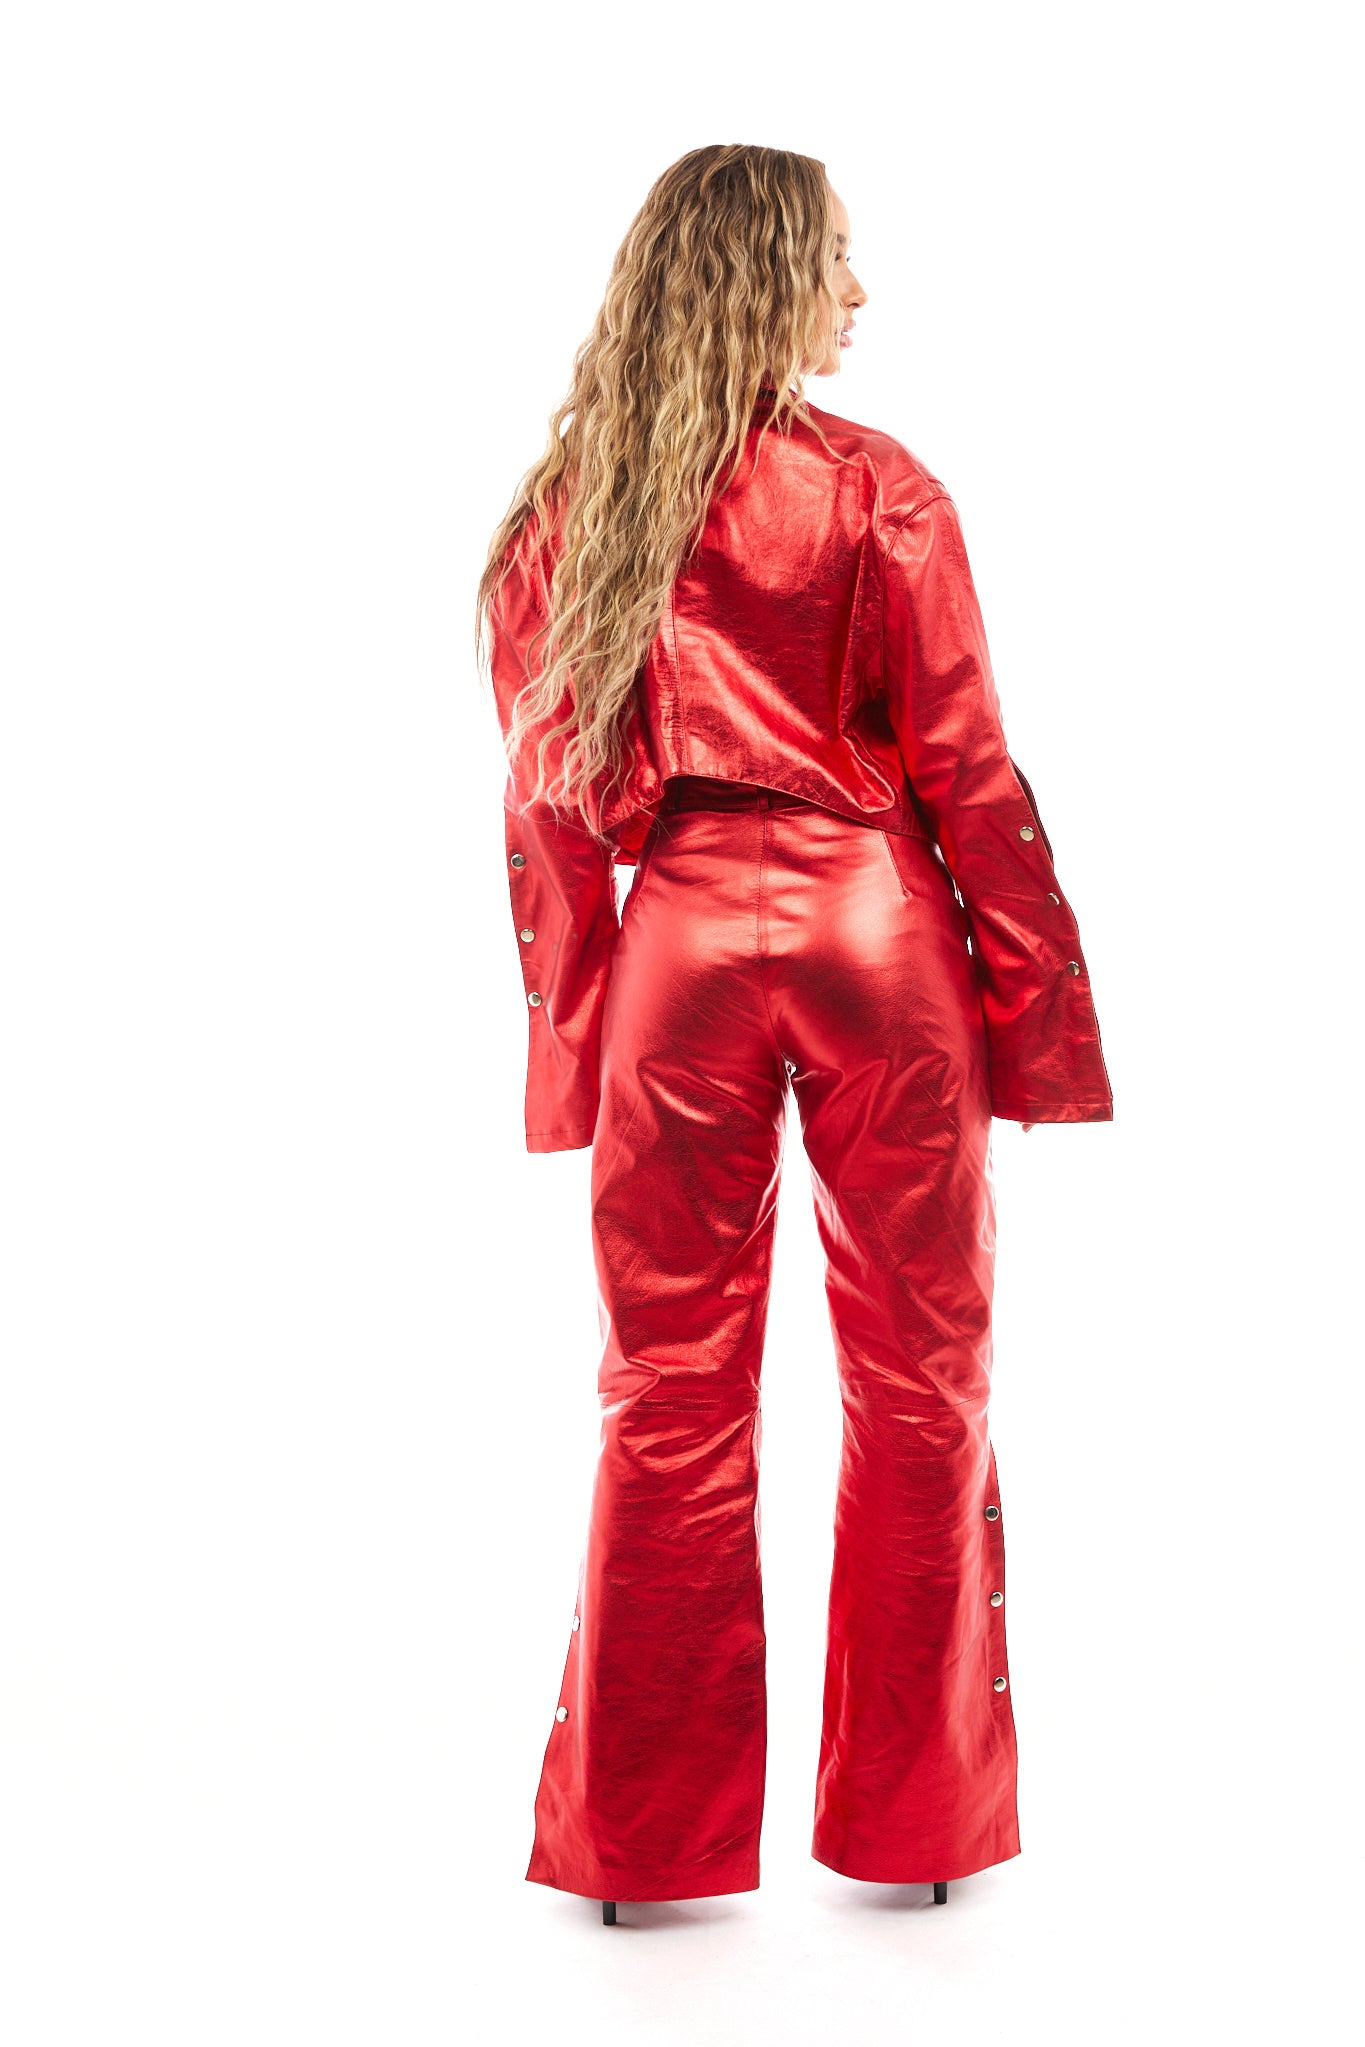 Venus Leather Pants (Red)